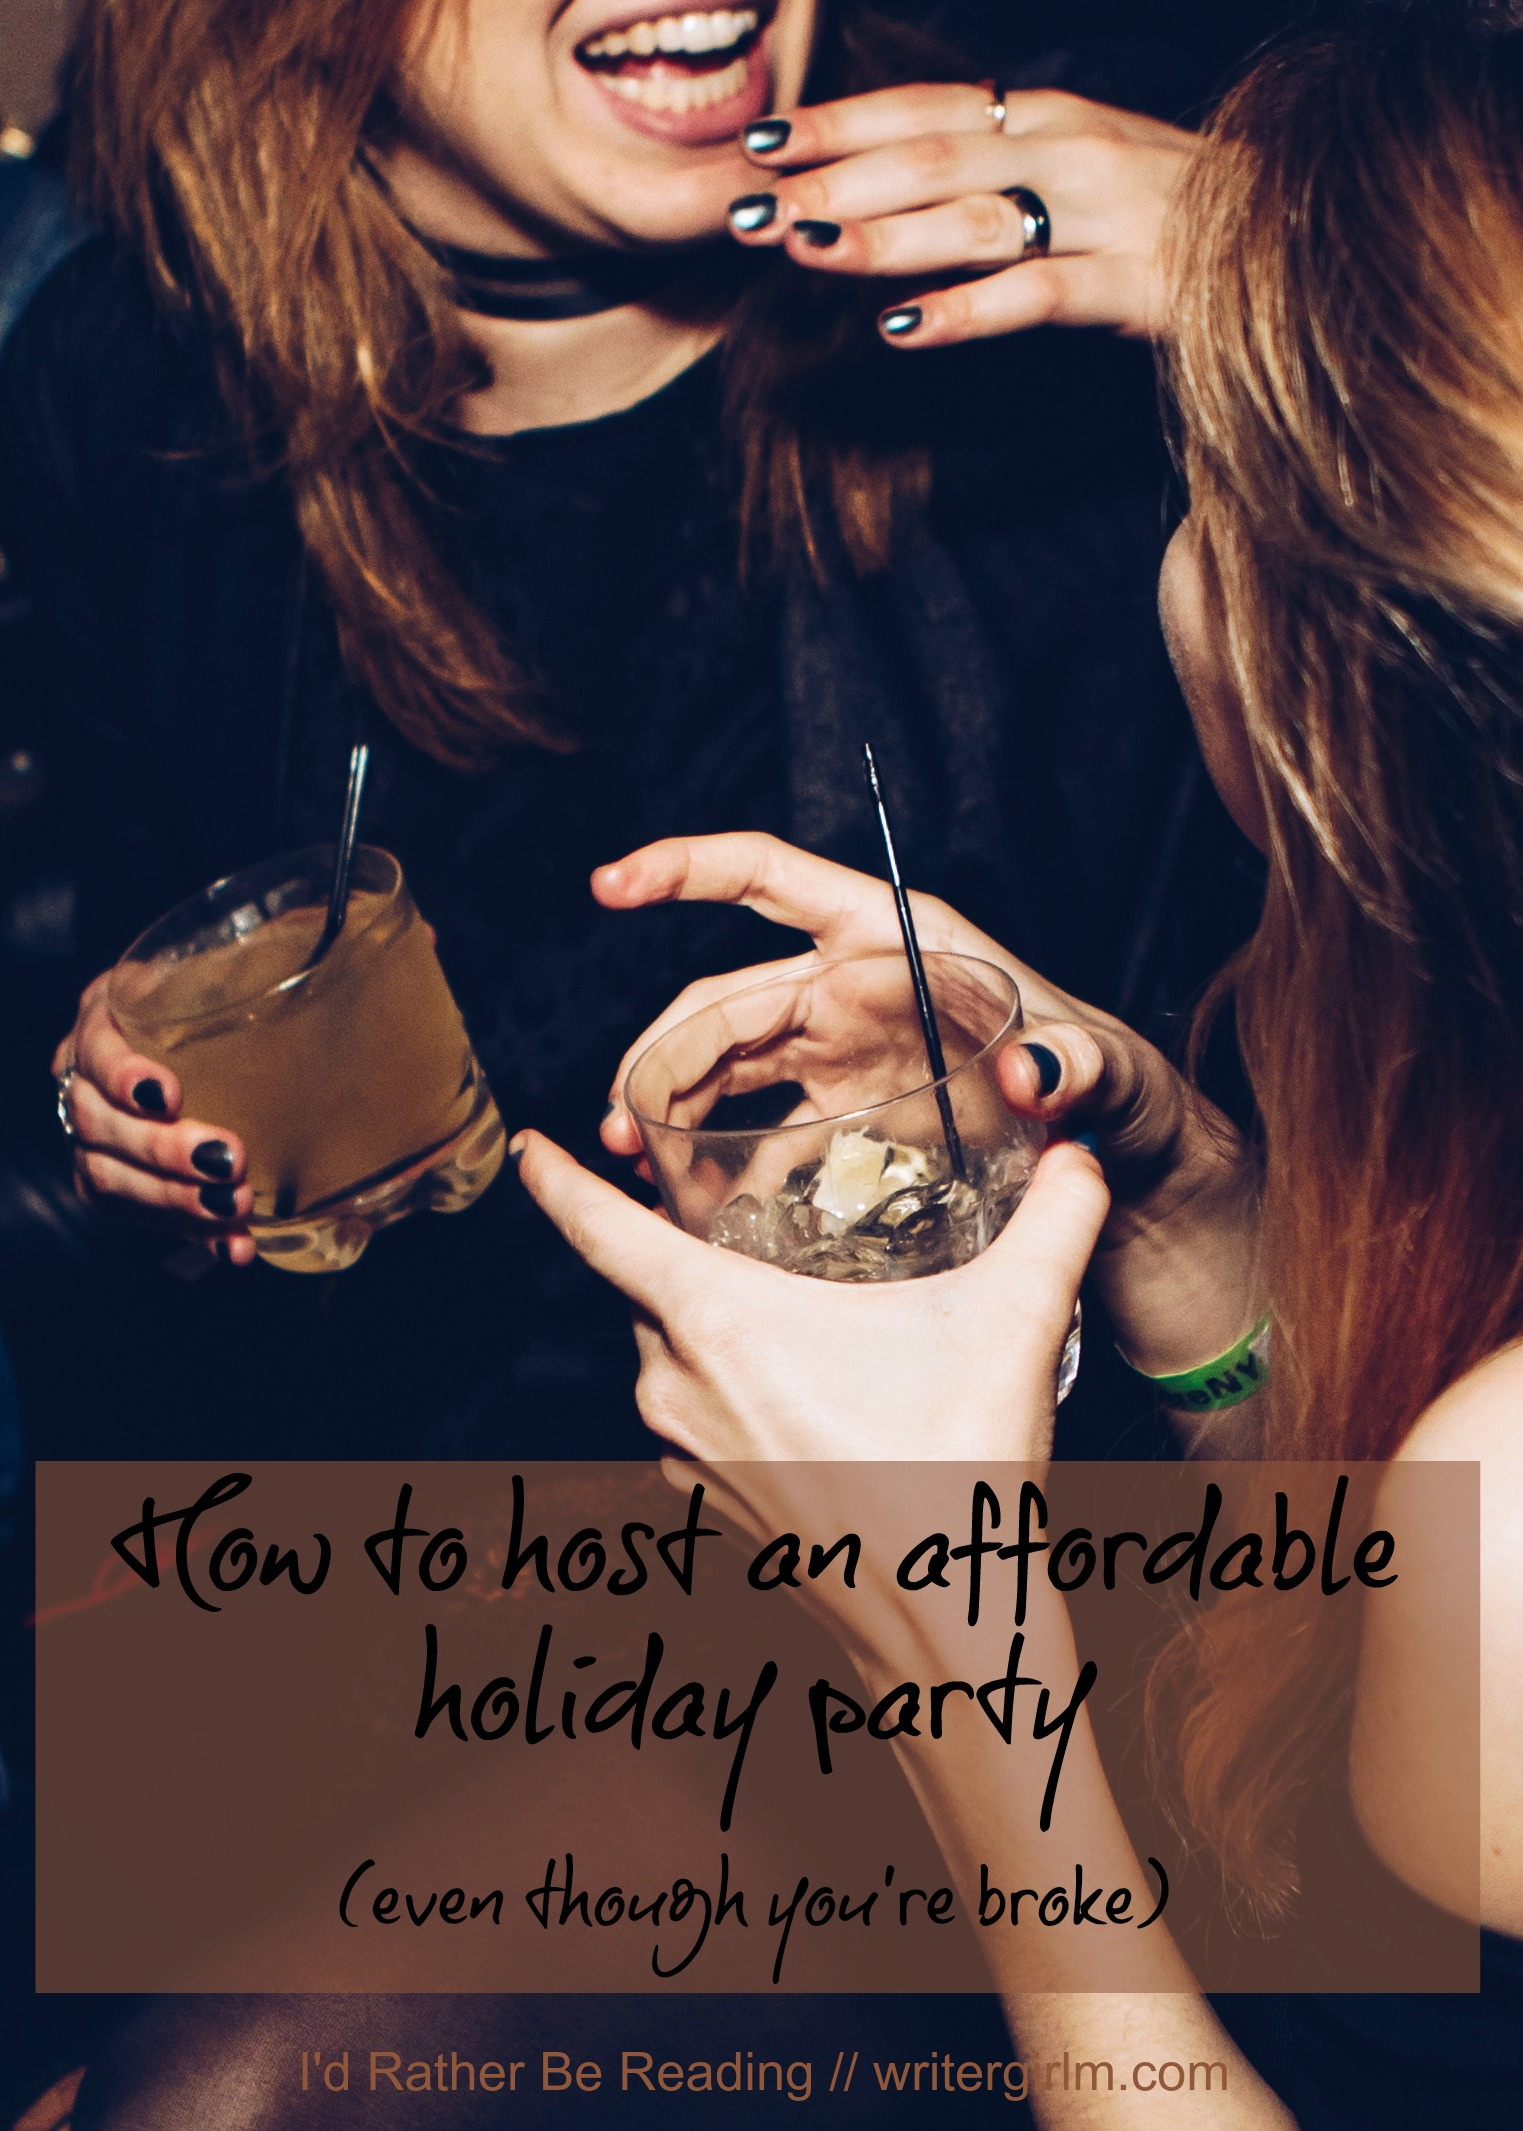 How to host an affordable holiday party (even though you're broke)